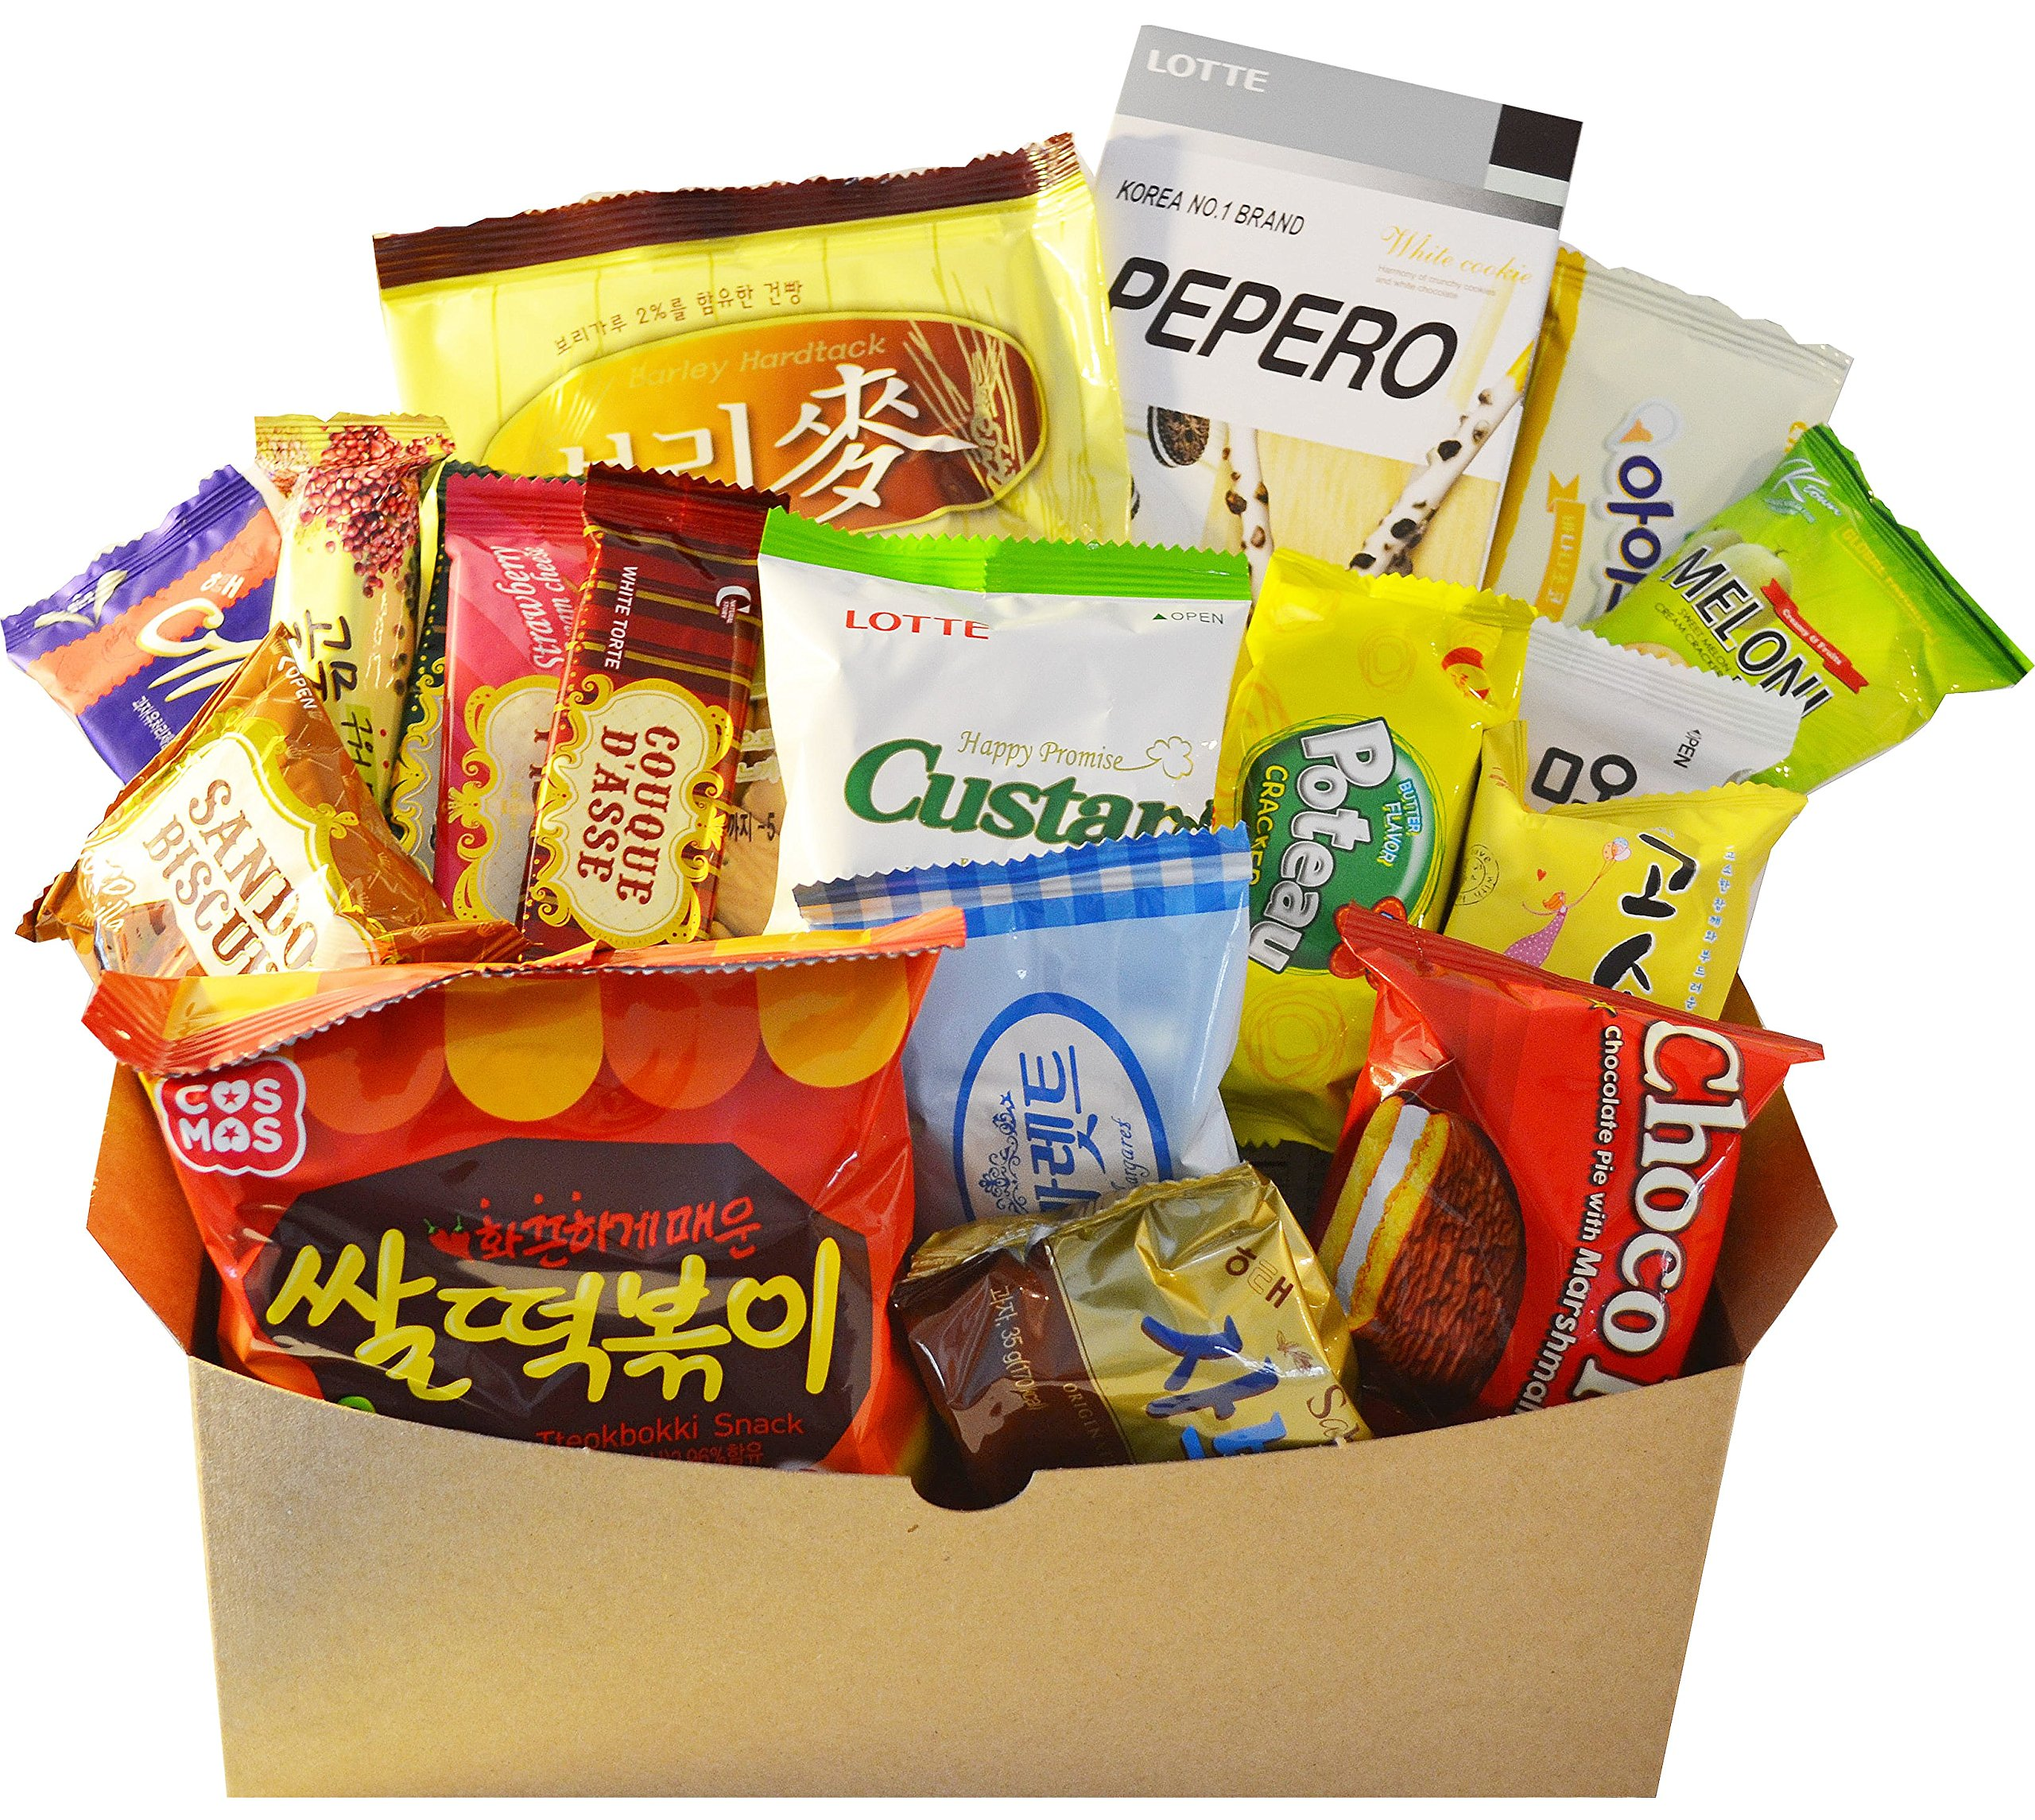 Classic Korean Snack Box (25 Count) - Care Package - Popular Variety Korean Candy, Cookie, Chips Snack Gift Pack (Single Set)